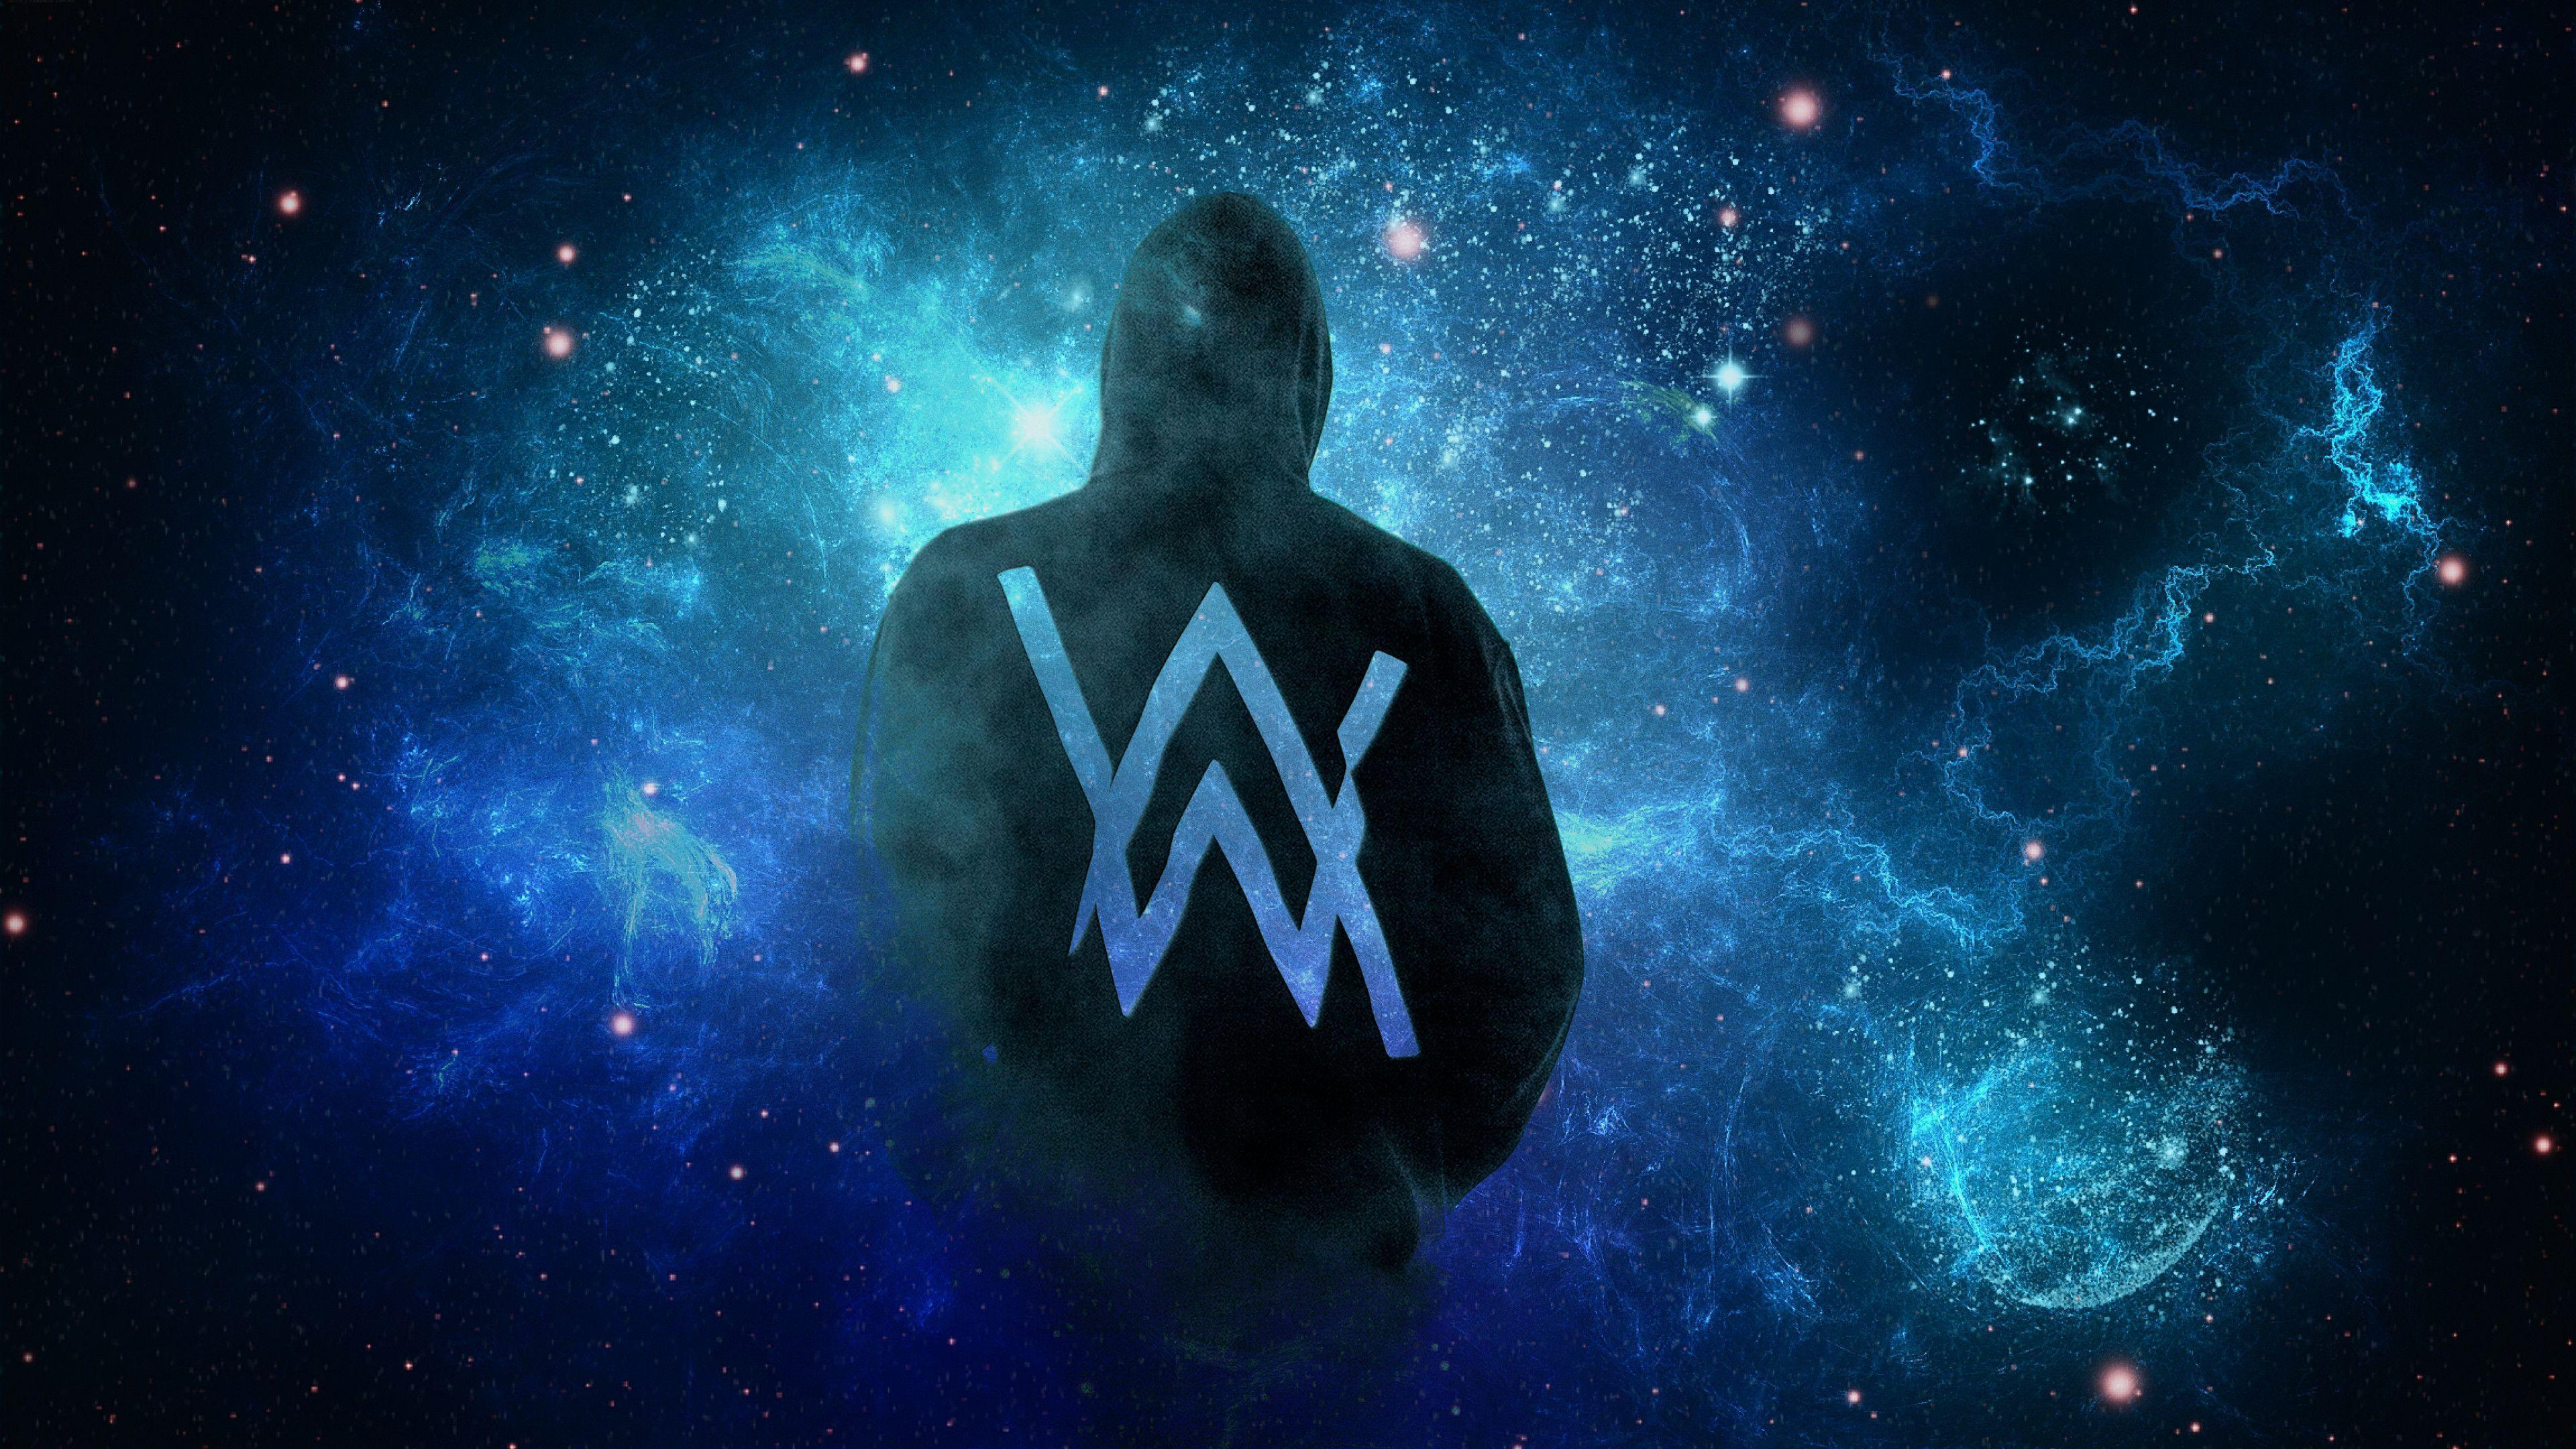 Alan Walker Wallpaper iPhone Android and Desktop   The RamenSwag 3840x2160